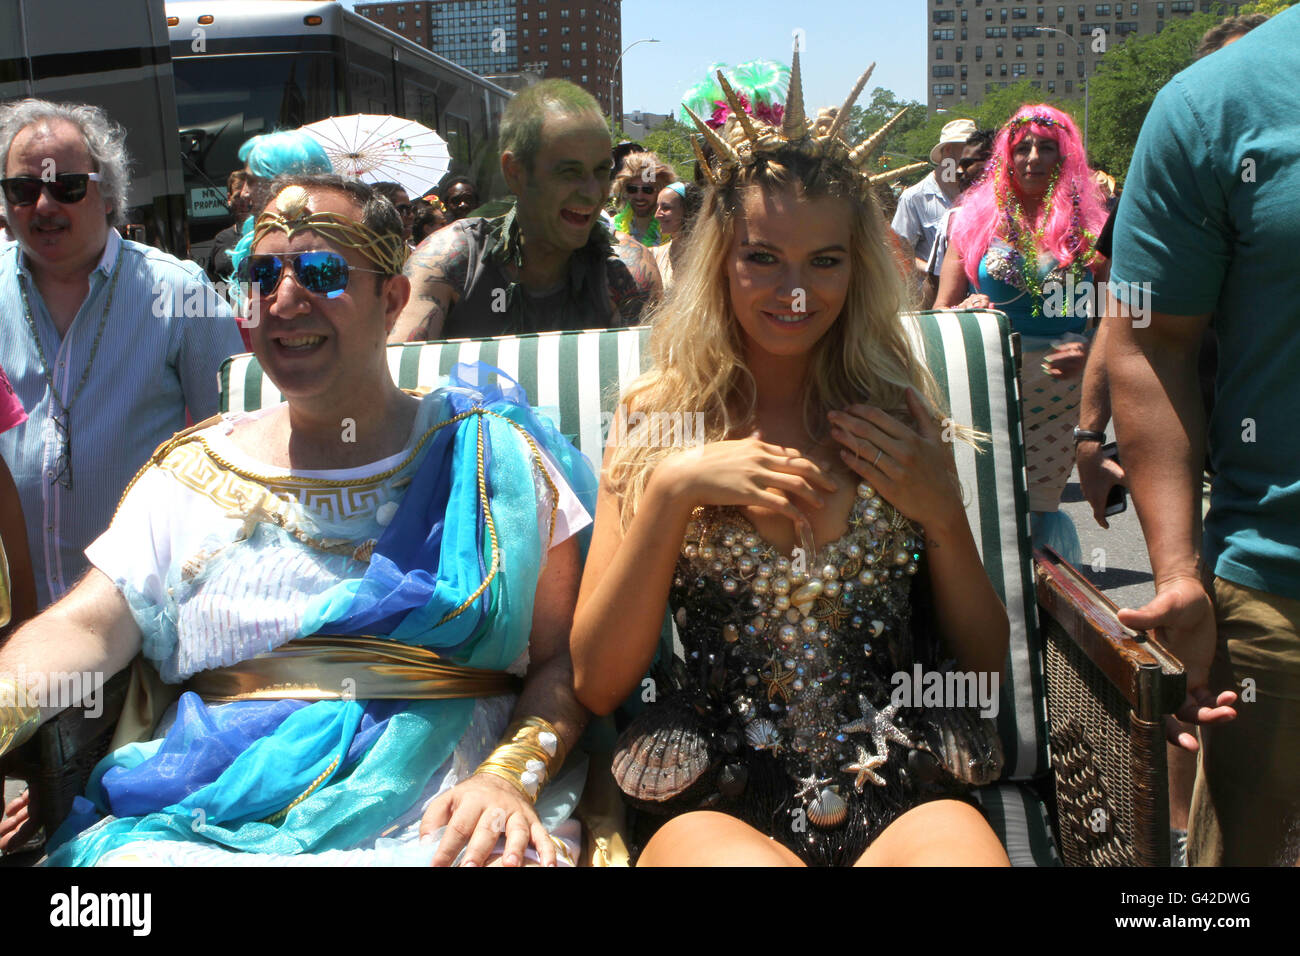 At the fitbit ipo celebration at new york stock exchange on thursday - New York New York Usa 18th June 2016 The 34th Annual Mermaid Parade Held In Coney Island Queen Mermaid Is Hailey Clauson